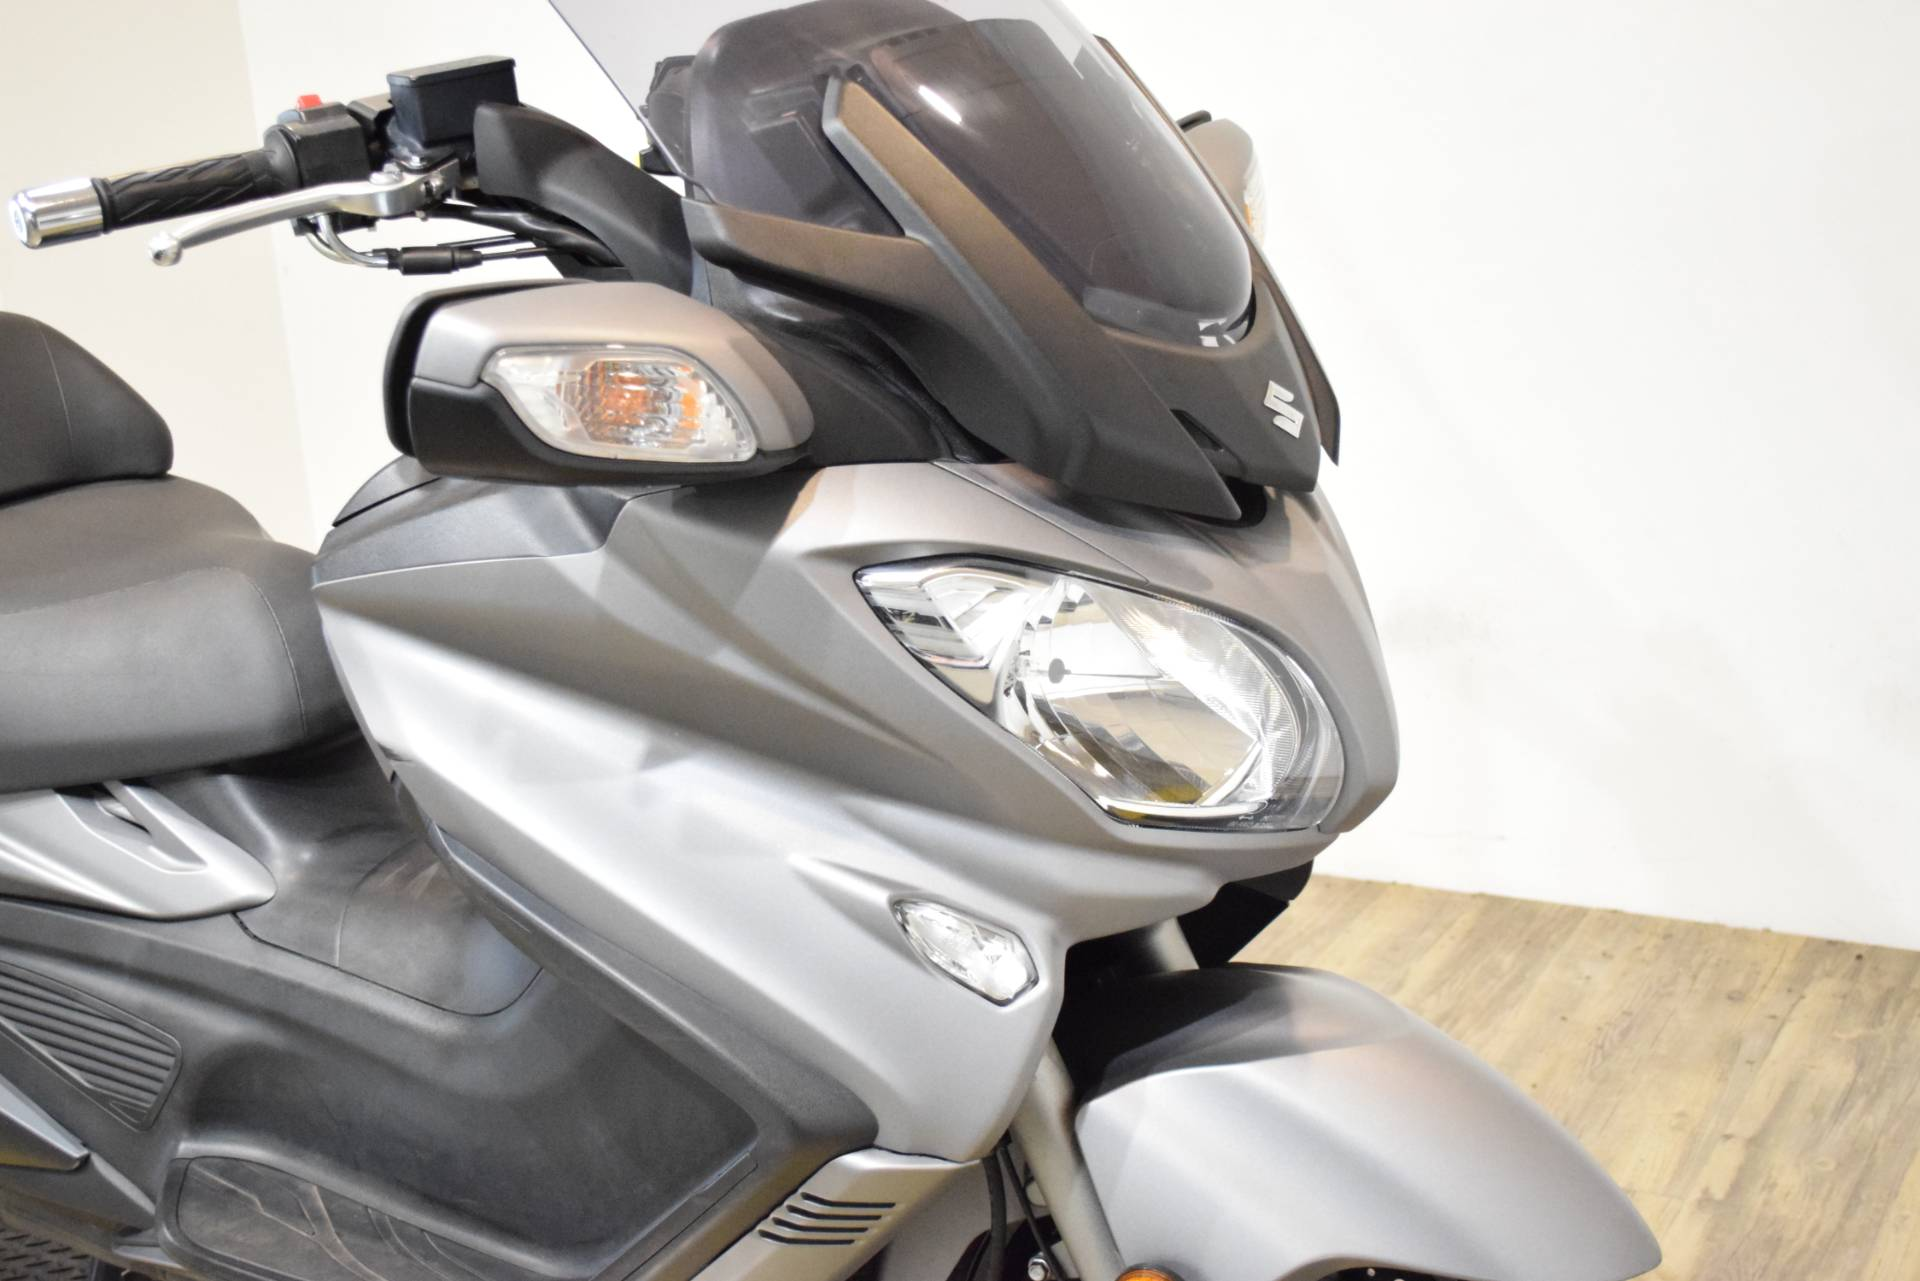 2014 Suzuki Burgman™ 650 ABS in Wauconda, Illinois - Photo 3